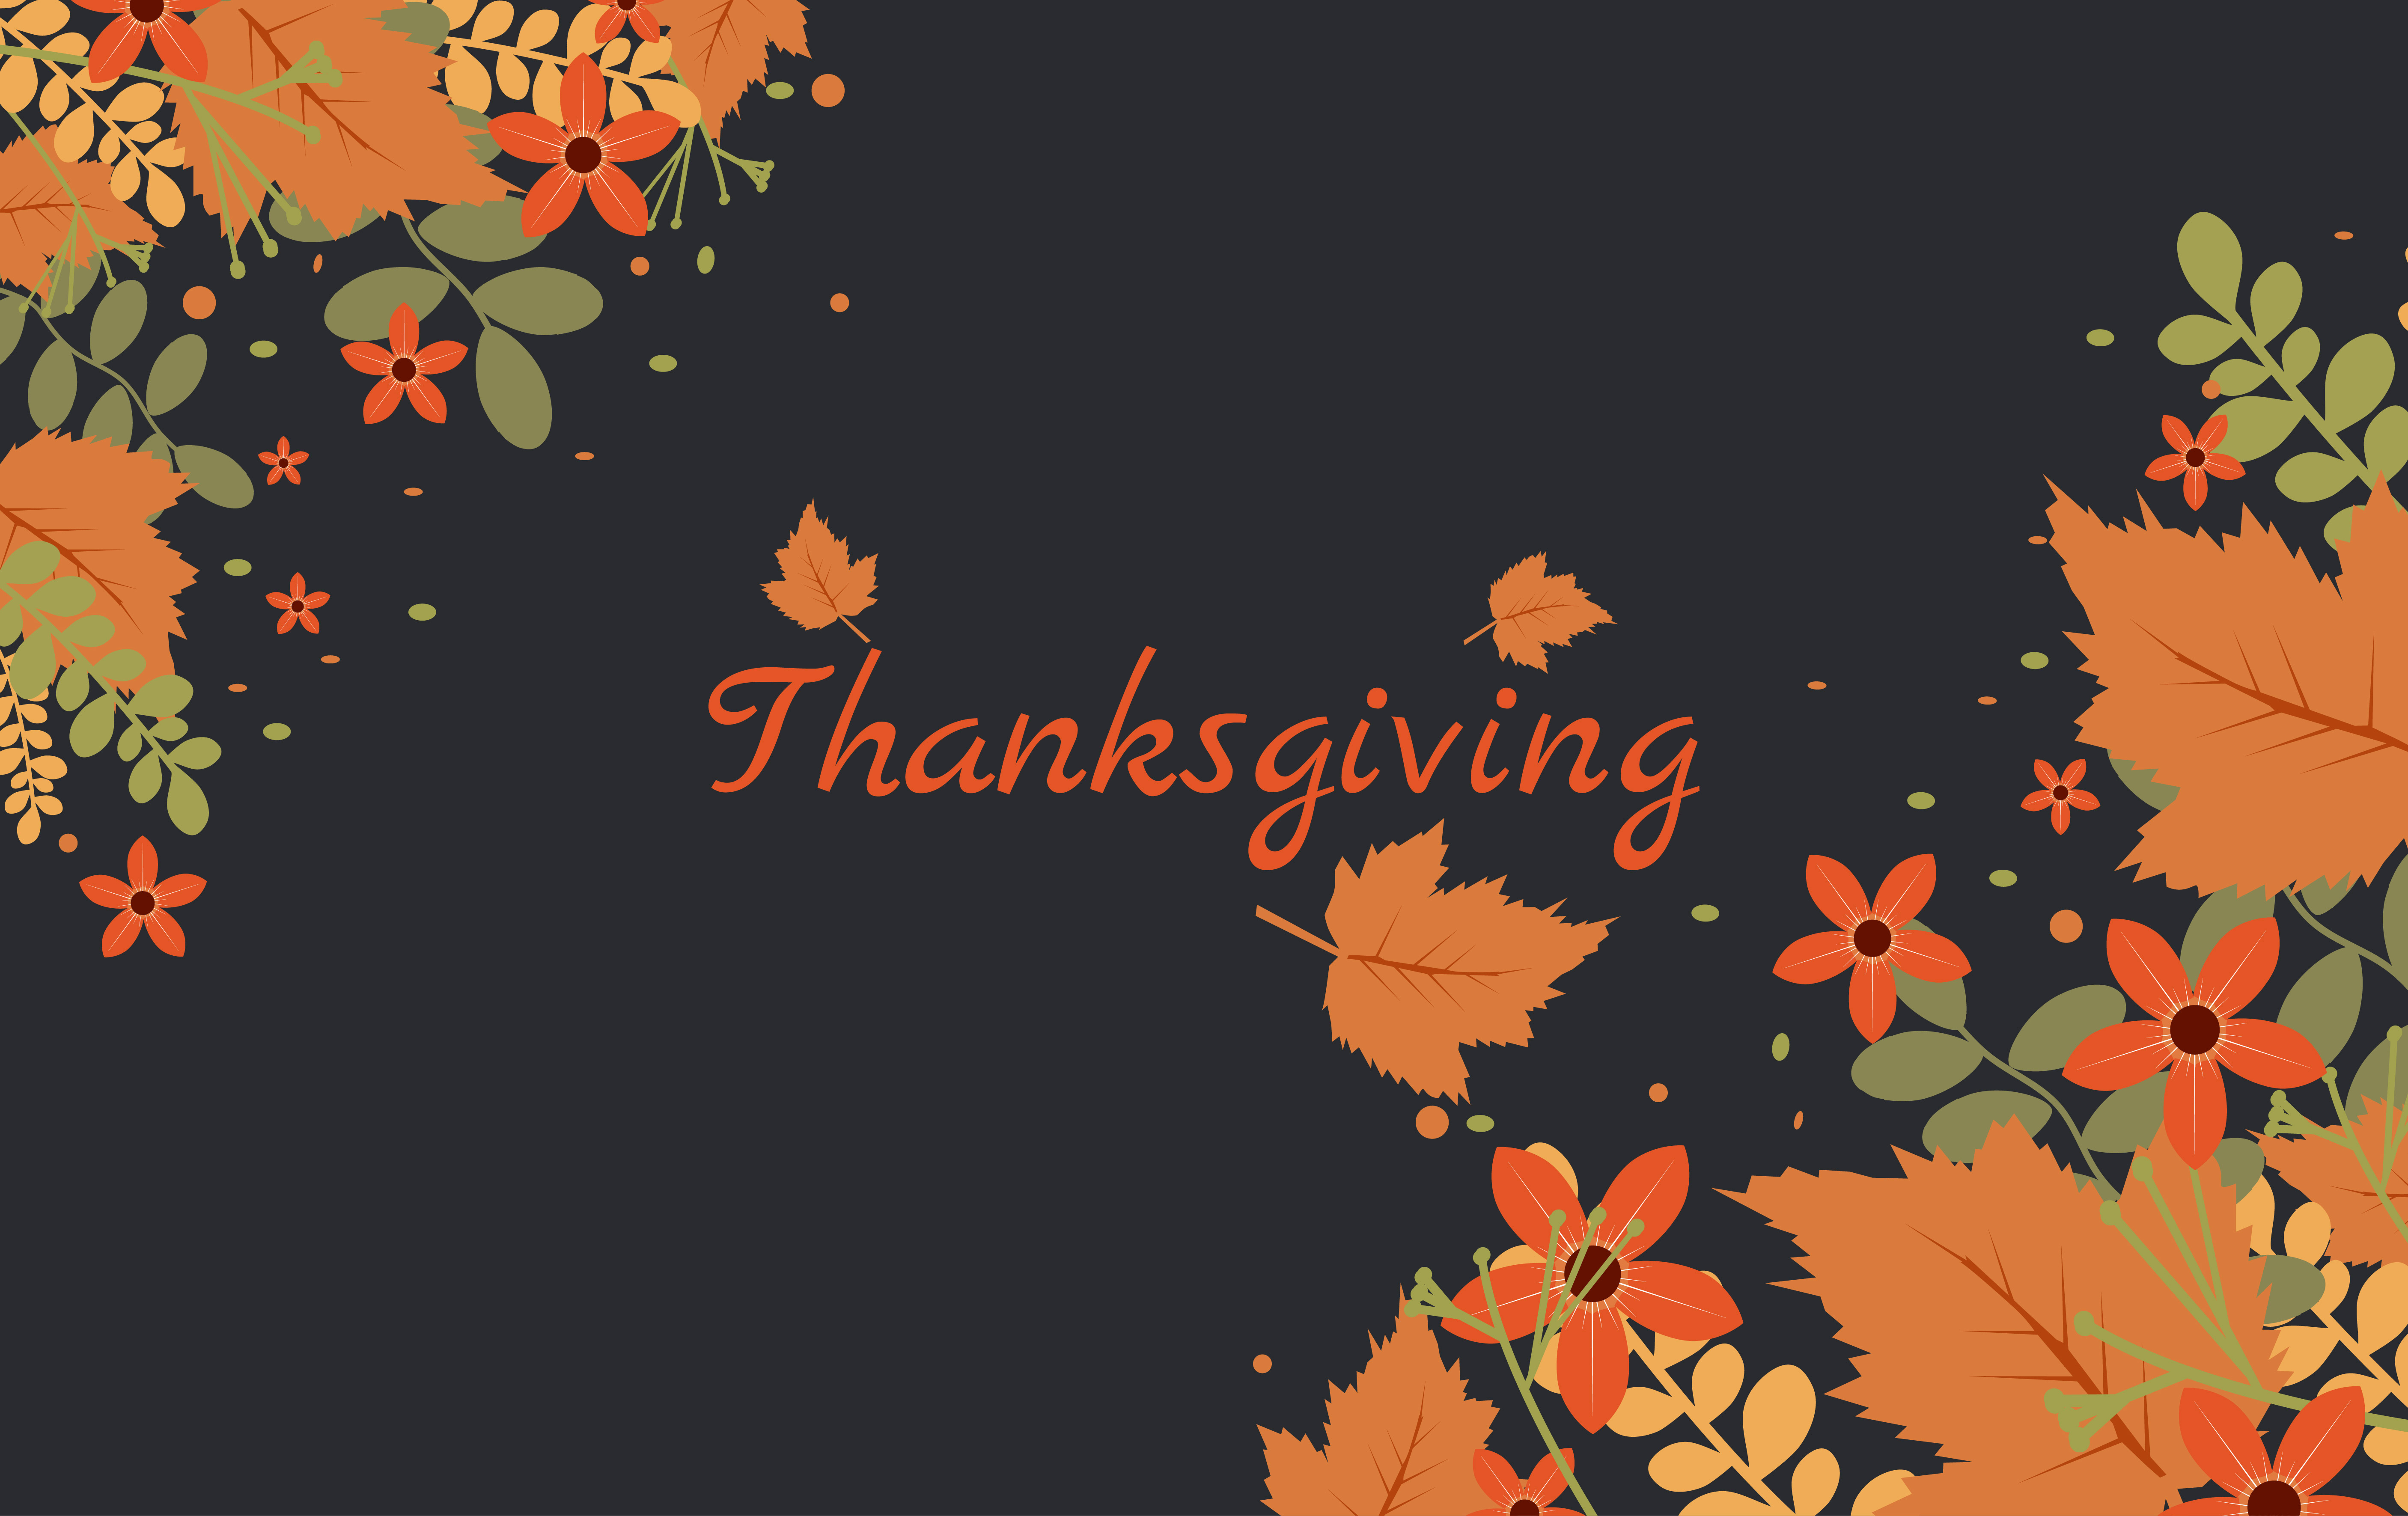 Download Free Thanksgiving Greeting Cards Design Graphic By Ngabeivector for Cricut Explore, Silhouette and other cutting machines.